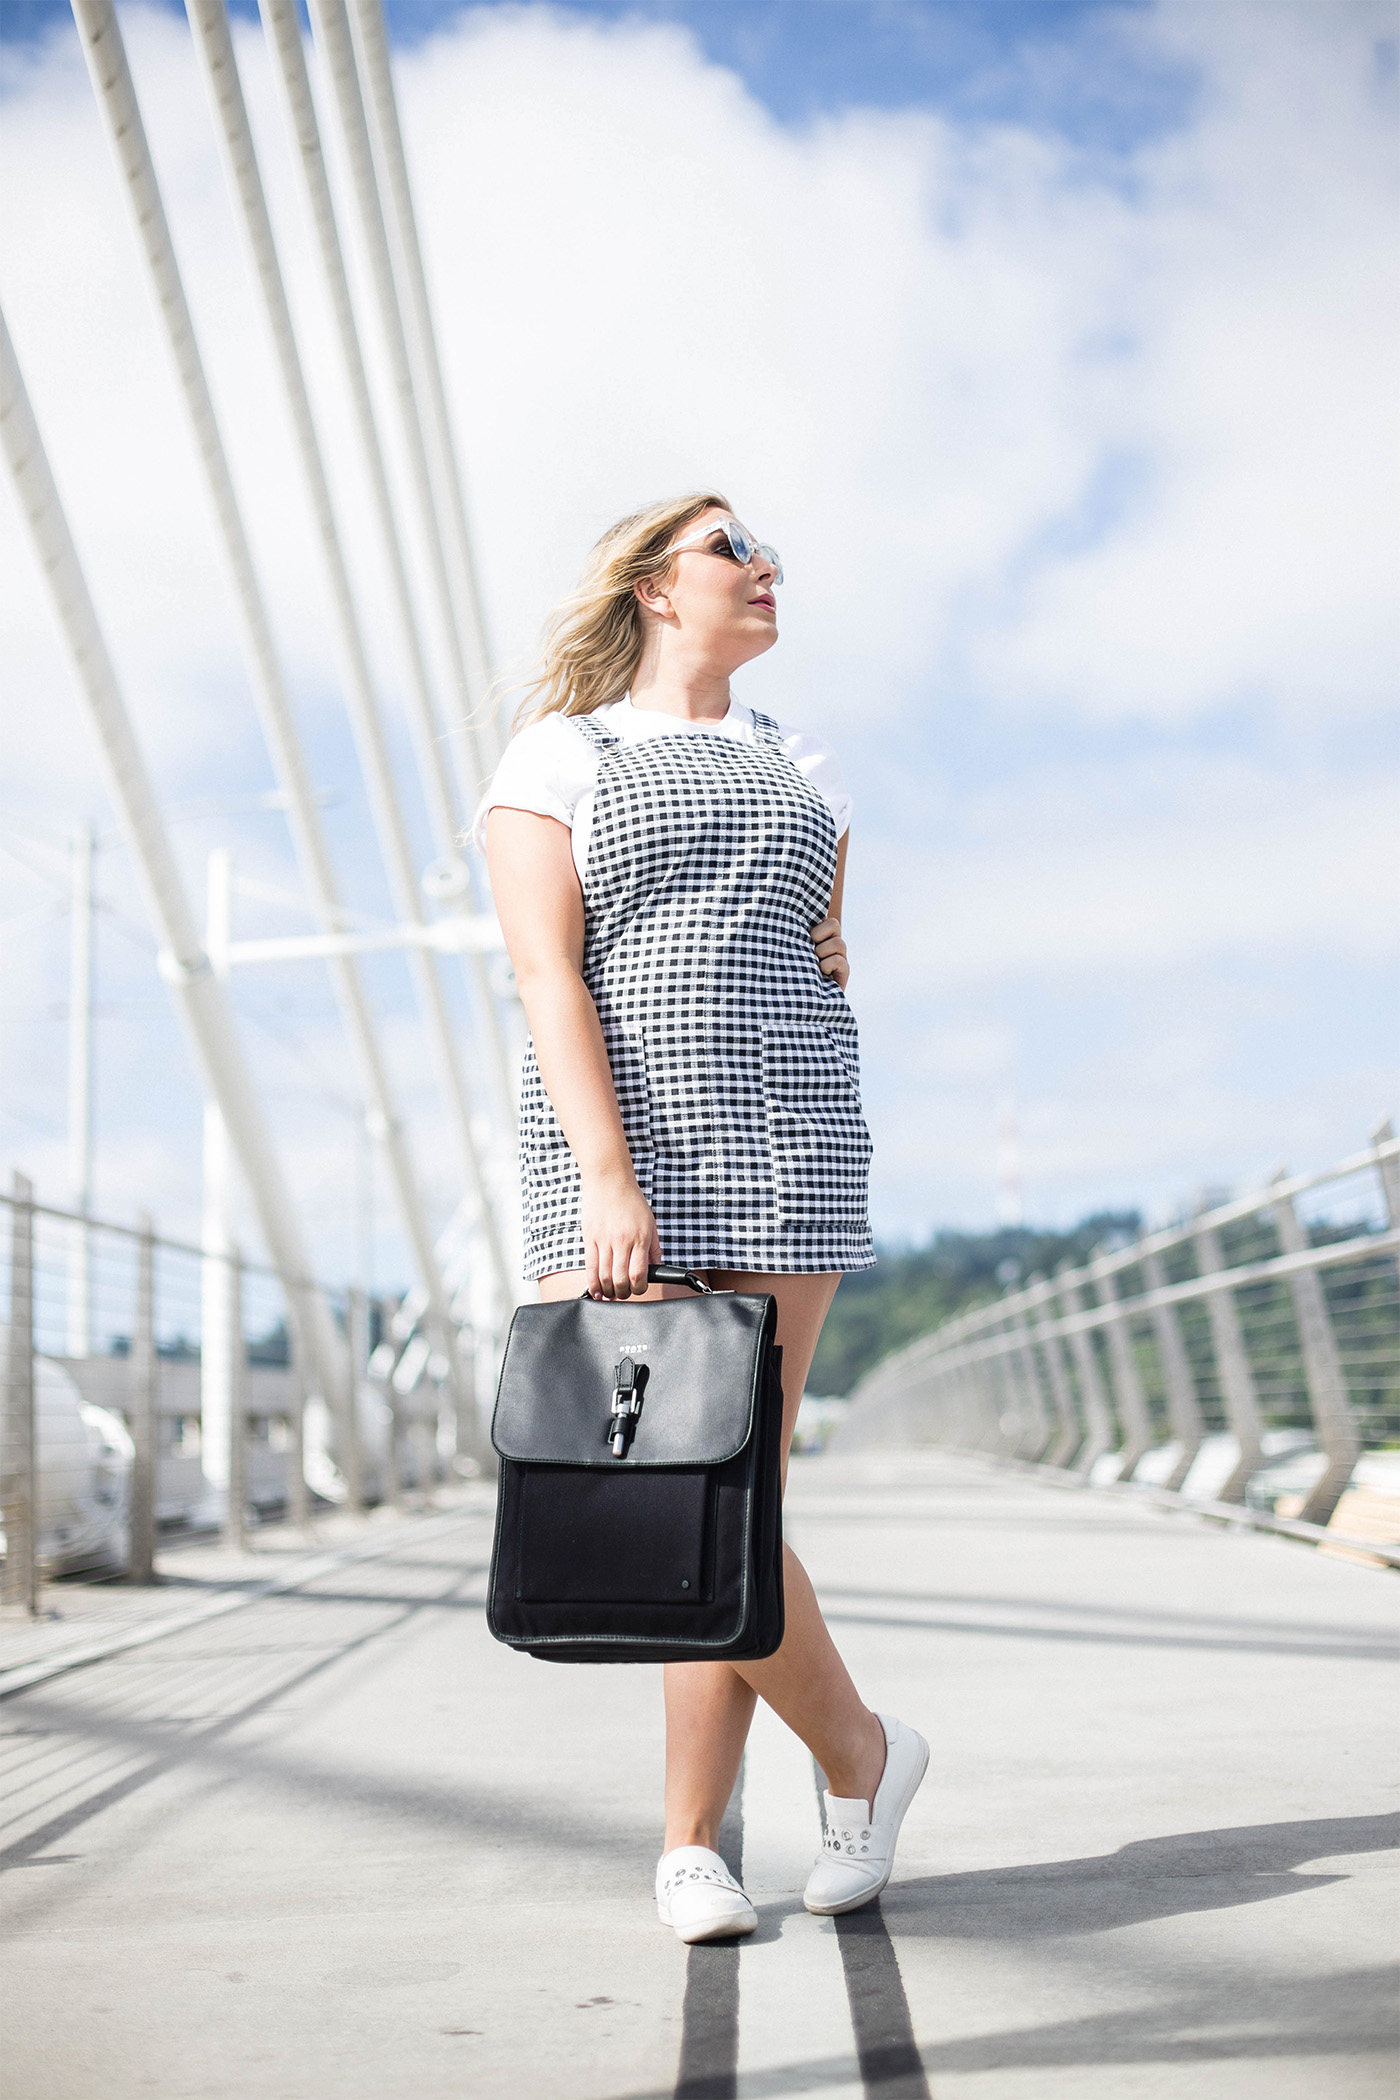 The Perfect Bag - Perfect for work or for a day in the city.